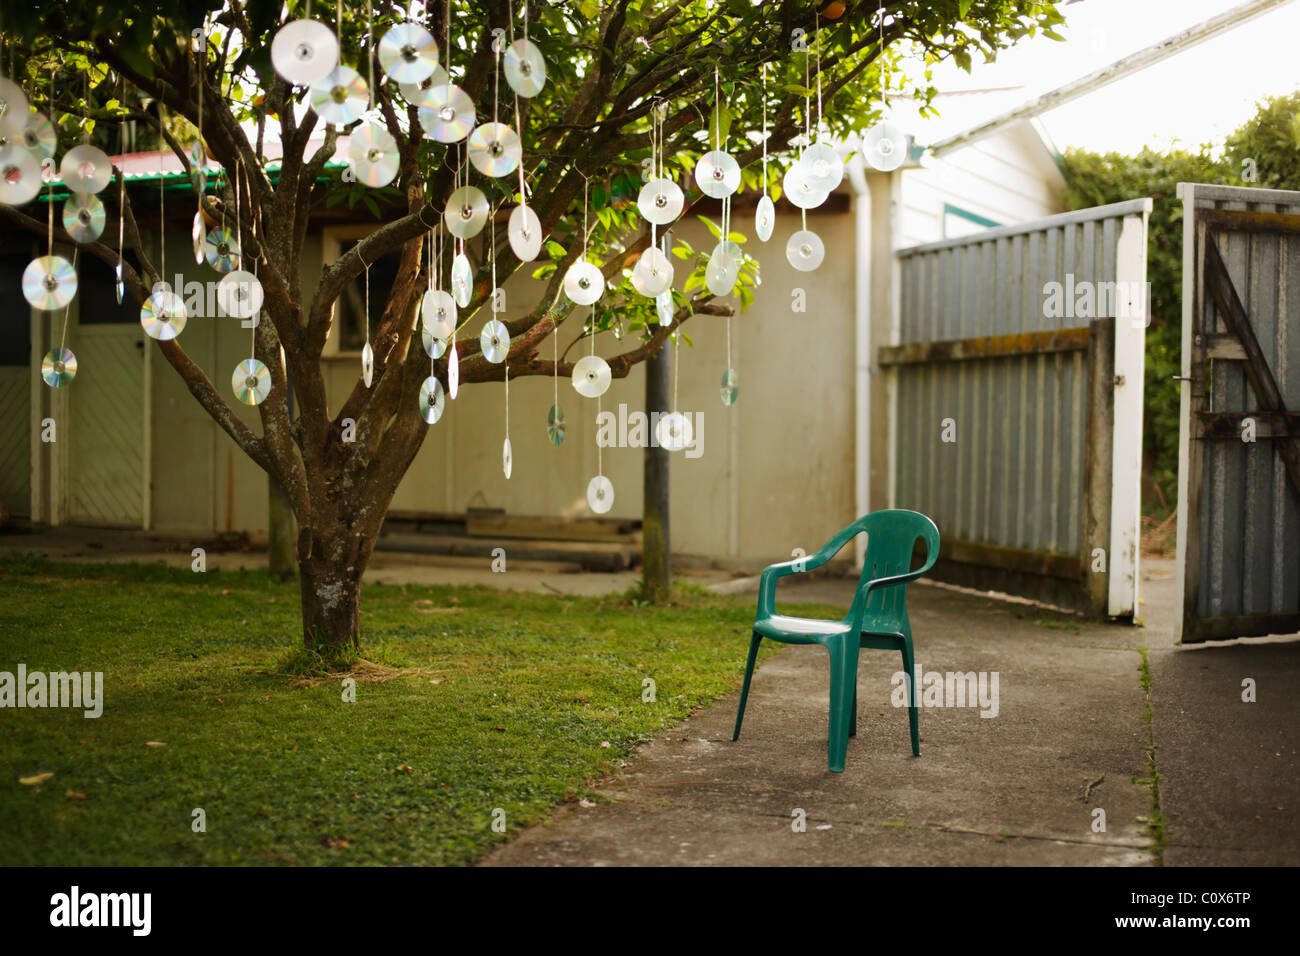 CDs hanging from tree - Stock Image